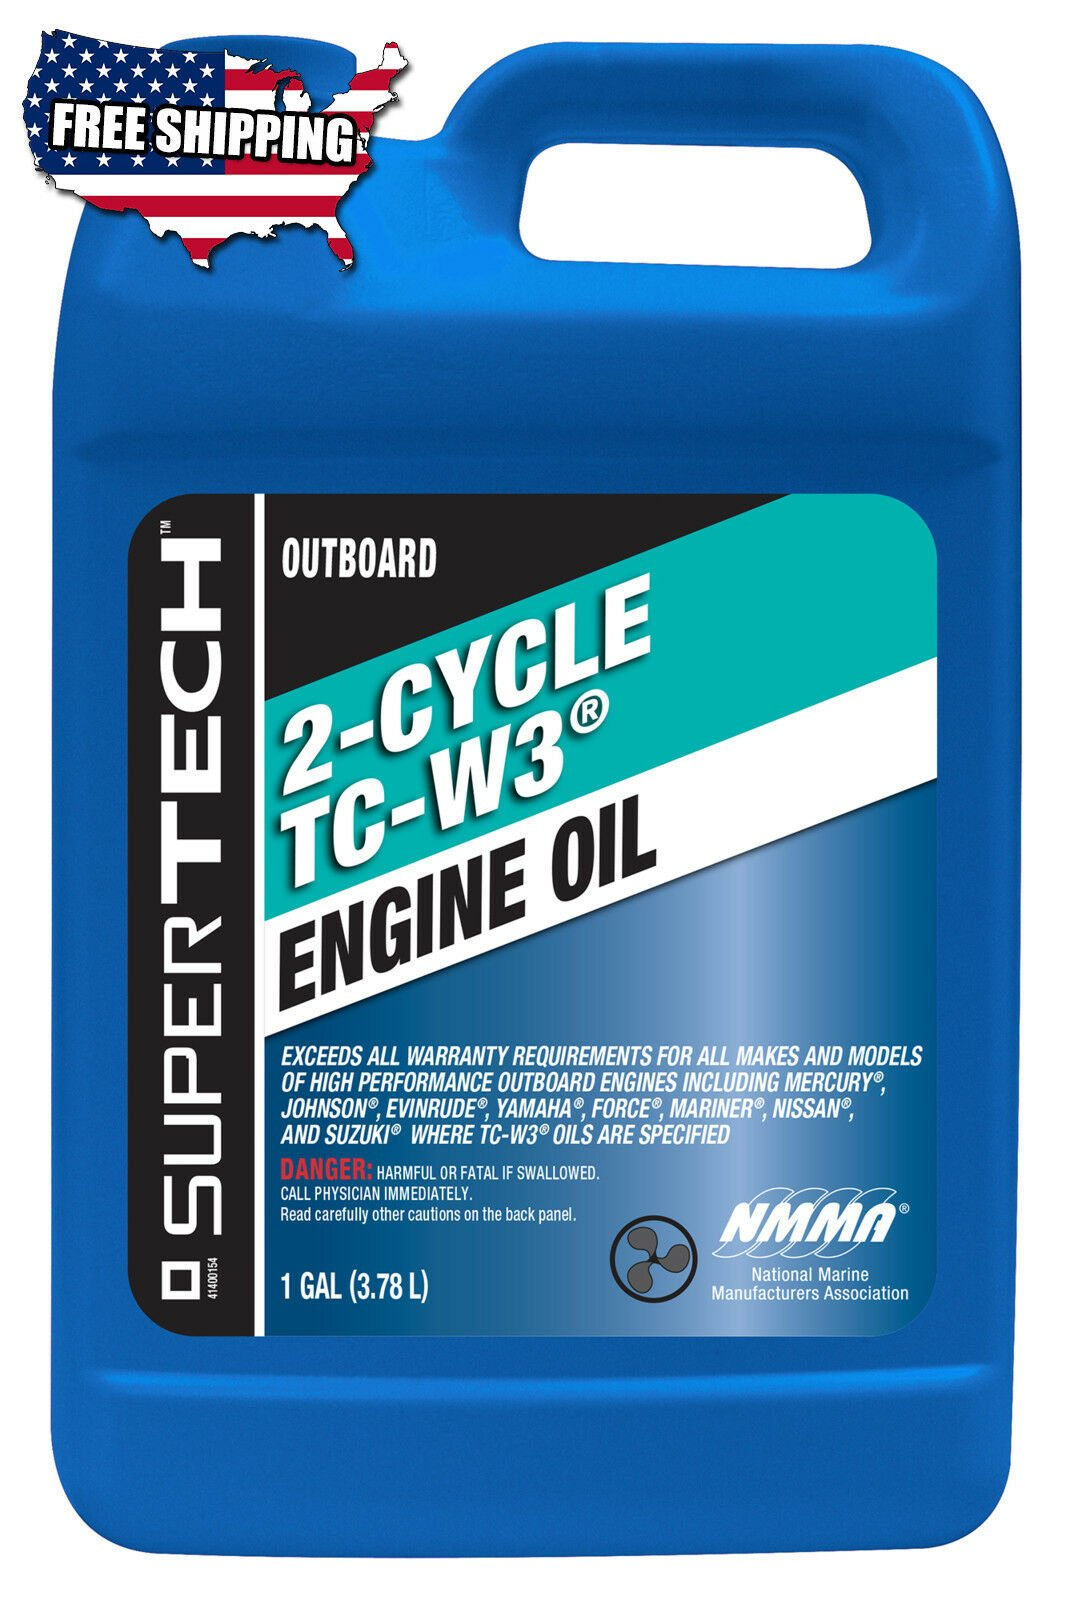 Supertech 2-CYCLE ENGINE OIL